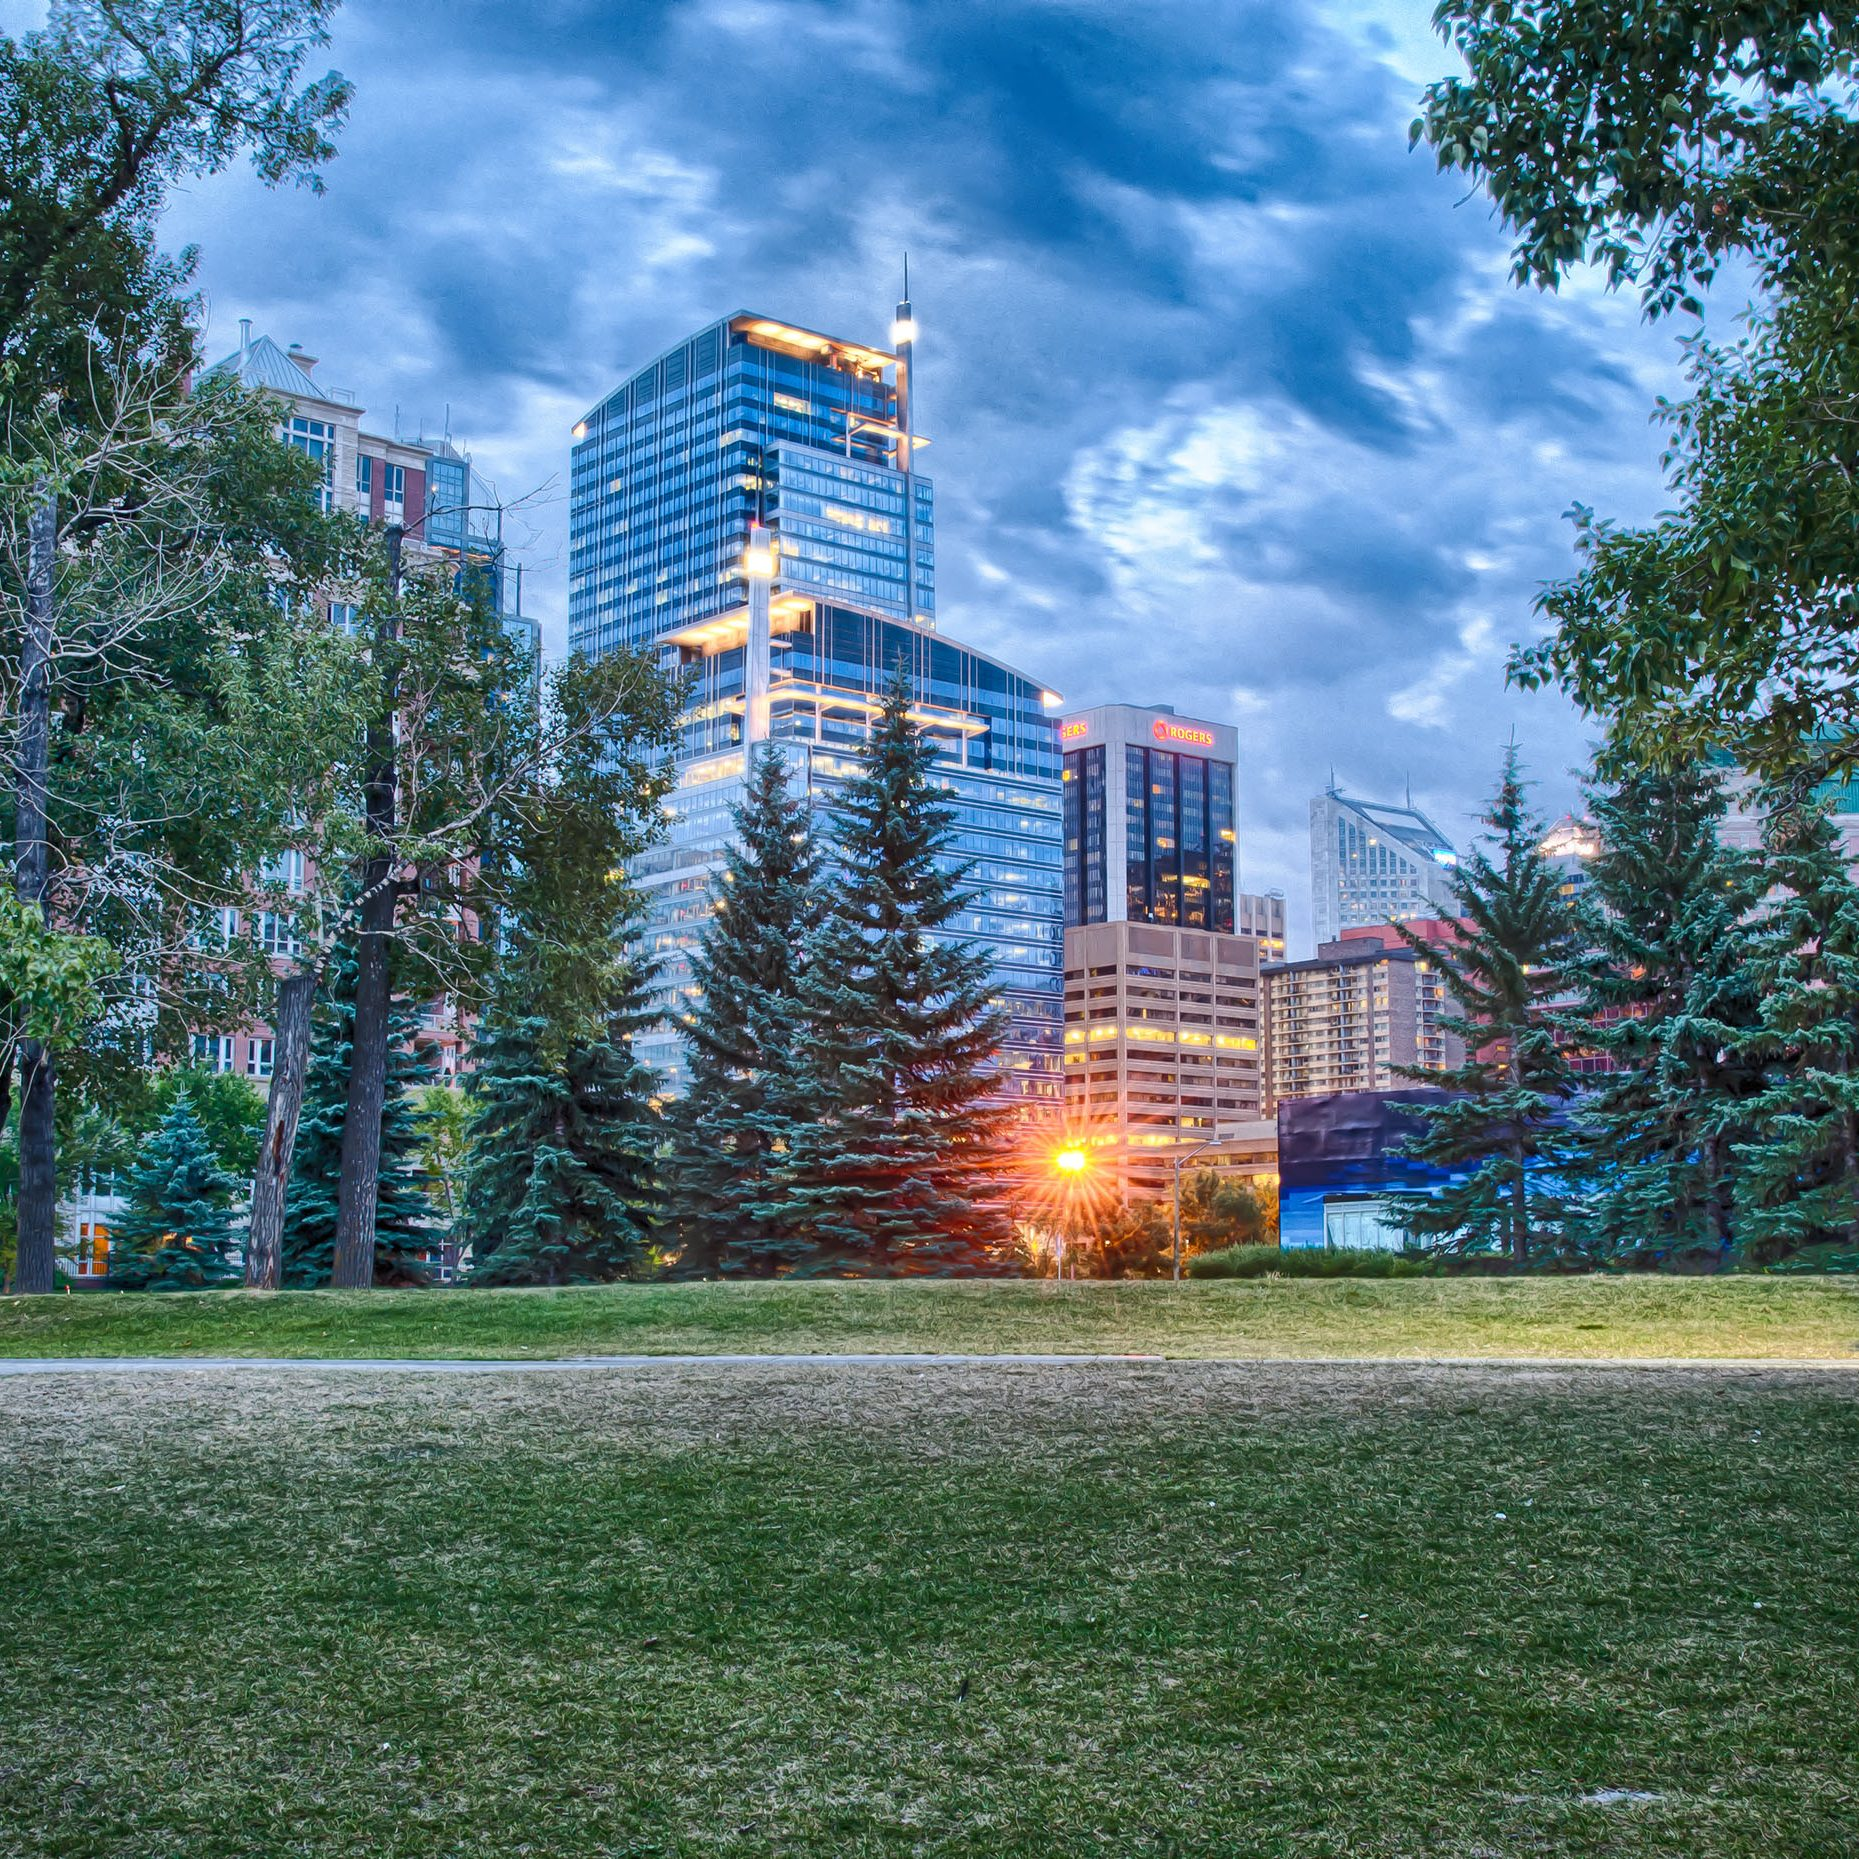 HDR shot of park in Calgary Canada.